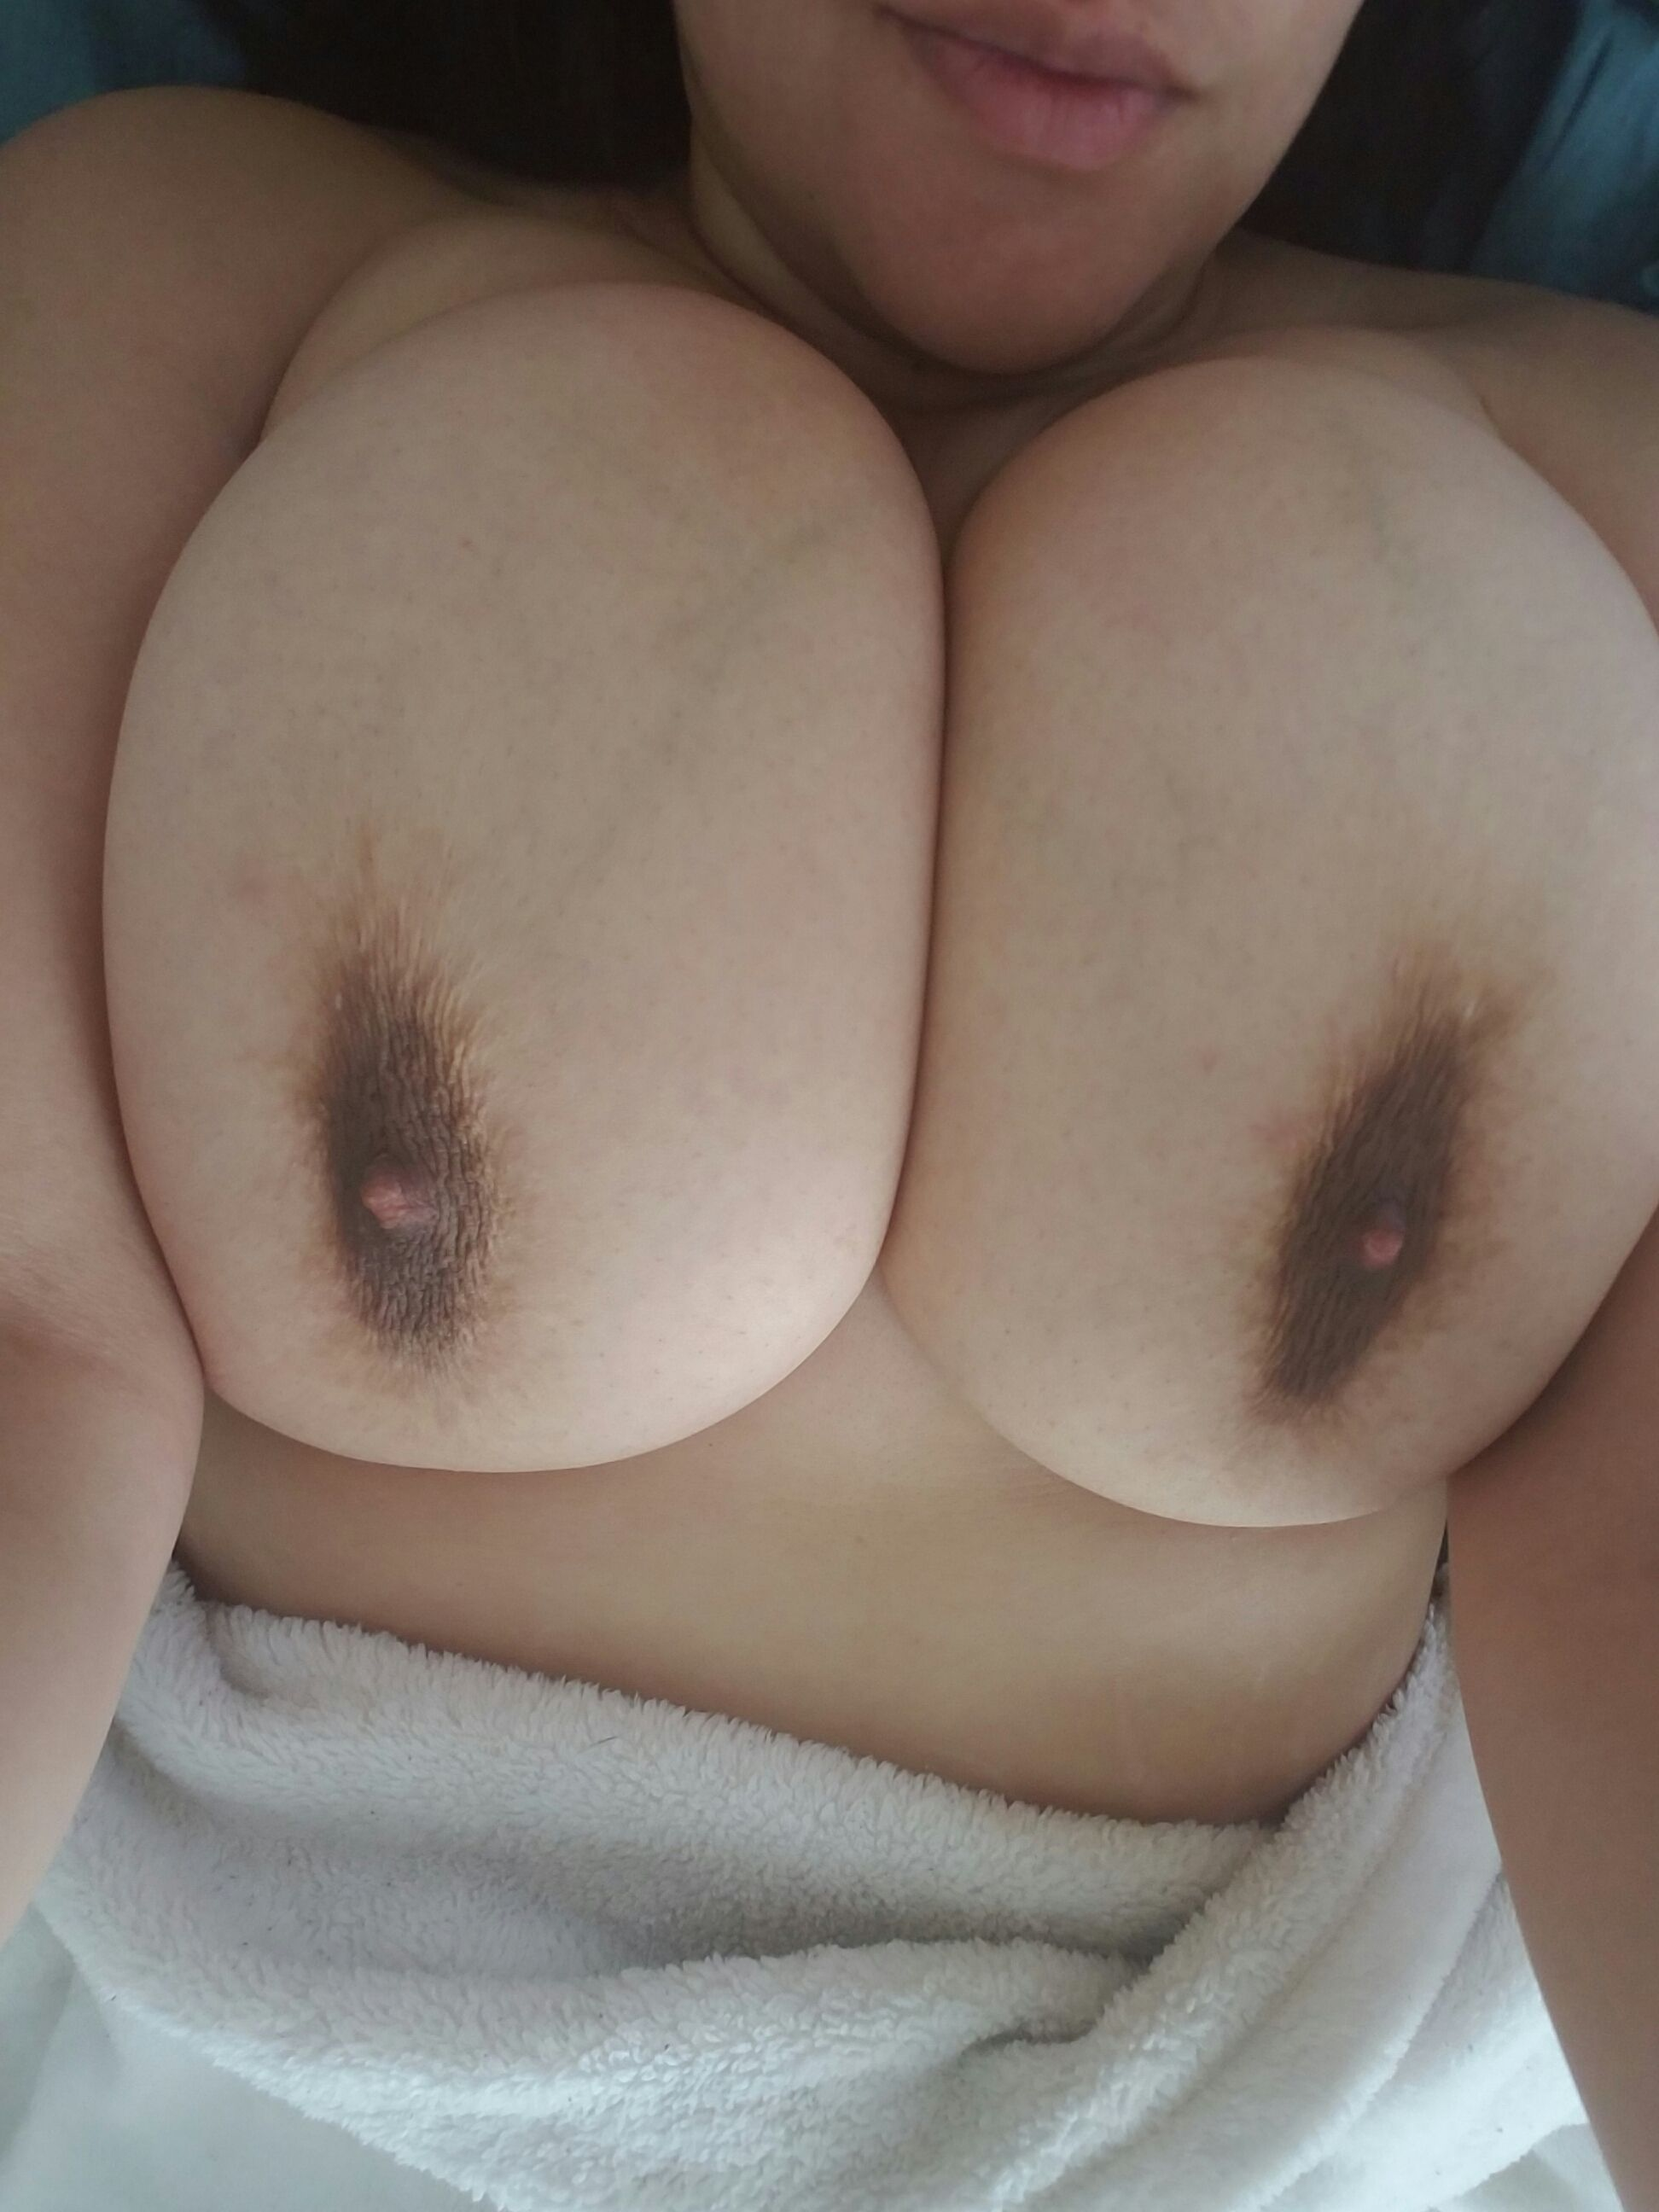 [Busty Amateurs] Nippy Morning ;)